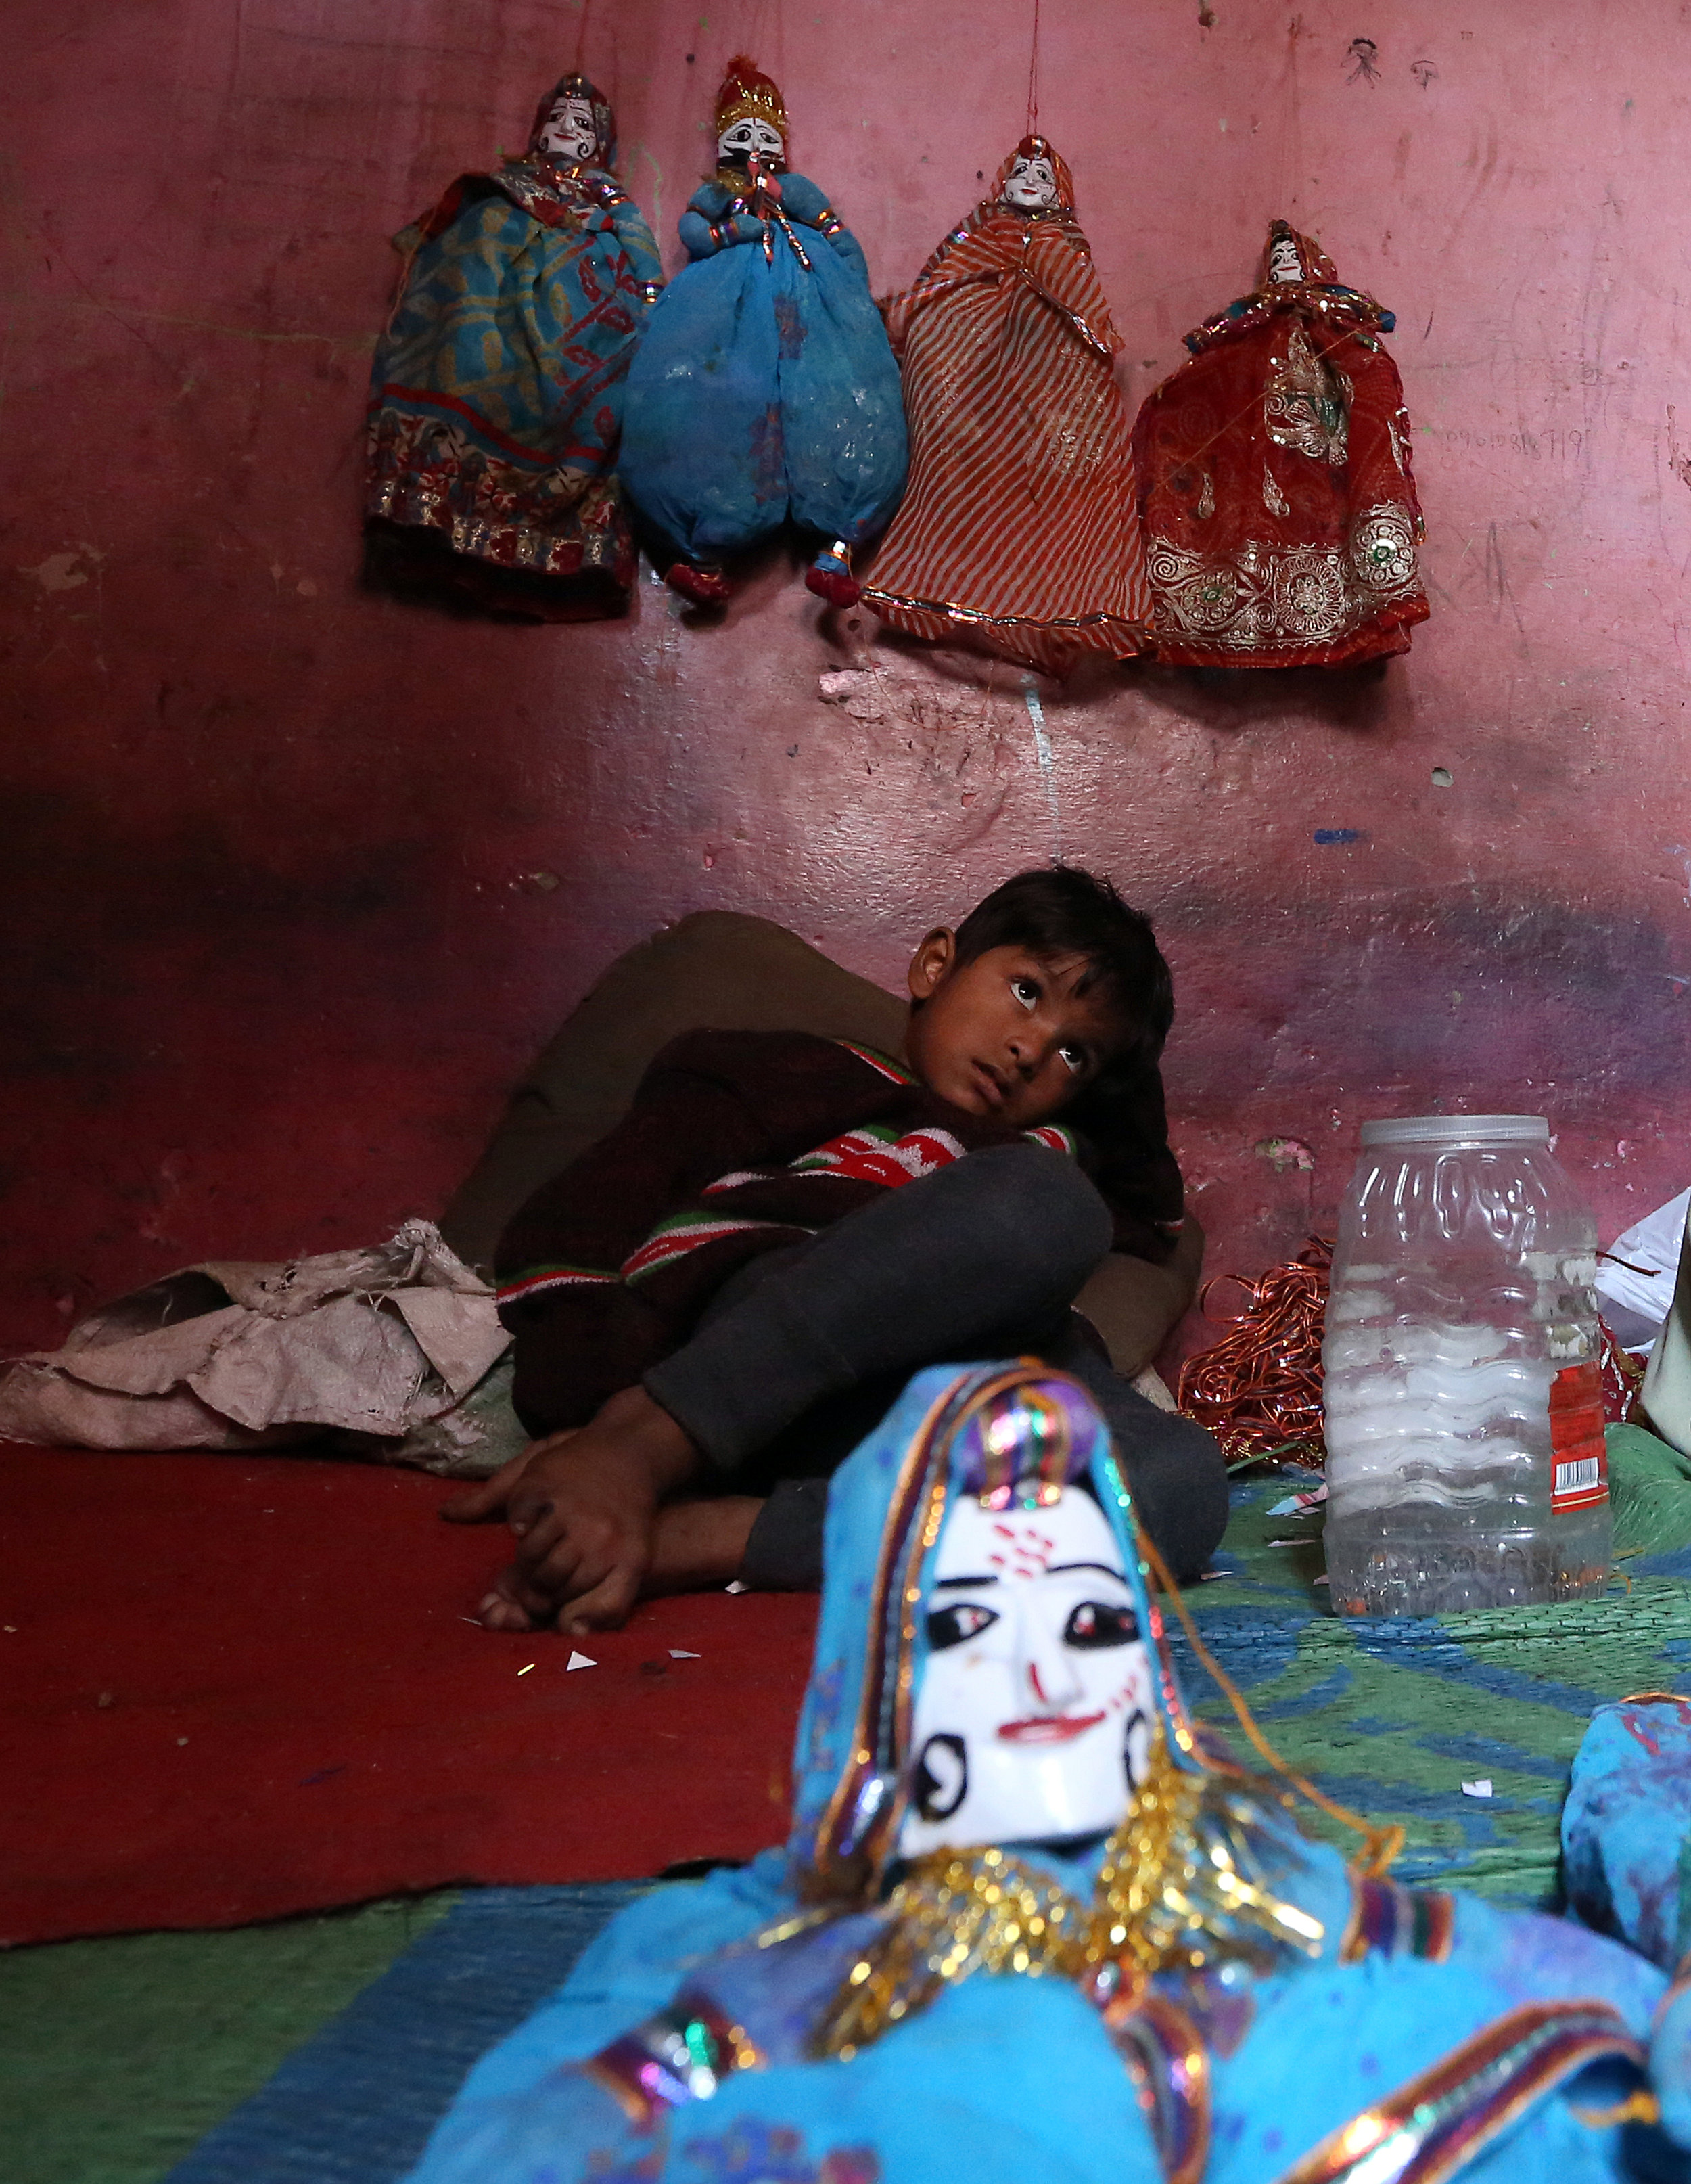 A boy is pictured underneath the puppets his mother, Rajasthani puppet maker Ghita Devi, made at his home in the Kathputli slum colony of New Delhi, India, December 8th, 2014. She is one of 40,000 people, speaking 11 different languages, living in the slum, which is popularly known for being the worlds largest colony of street performers, including magicians, snake charmers, acrobats, singers, dancers, actors, traditional healers and musicians and puppeteers. Their livelihood is under threat however as the Delhi government has obtained contracts to demolish the colony to make way for developers to build high-rise apartments.